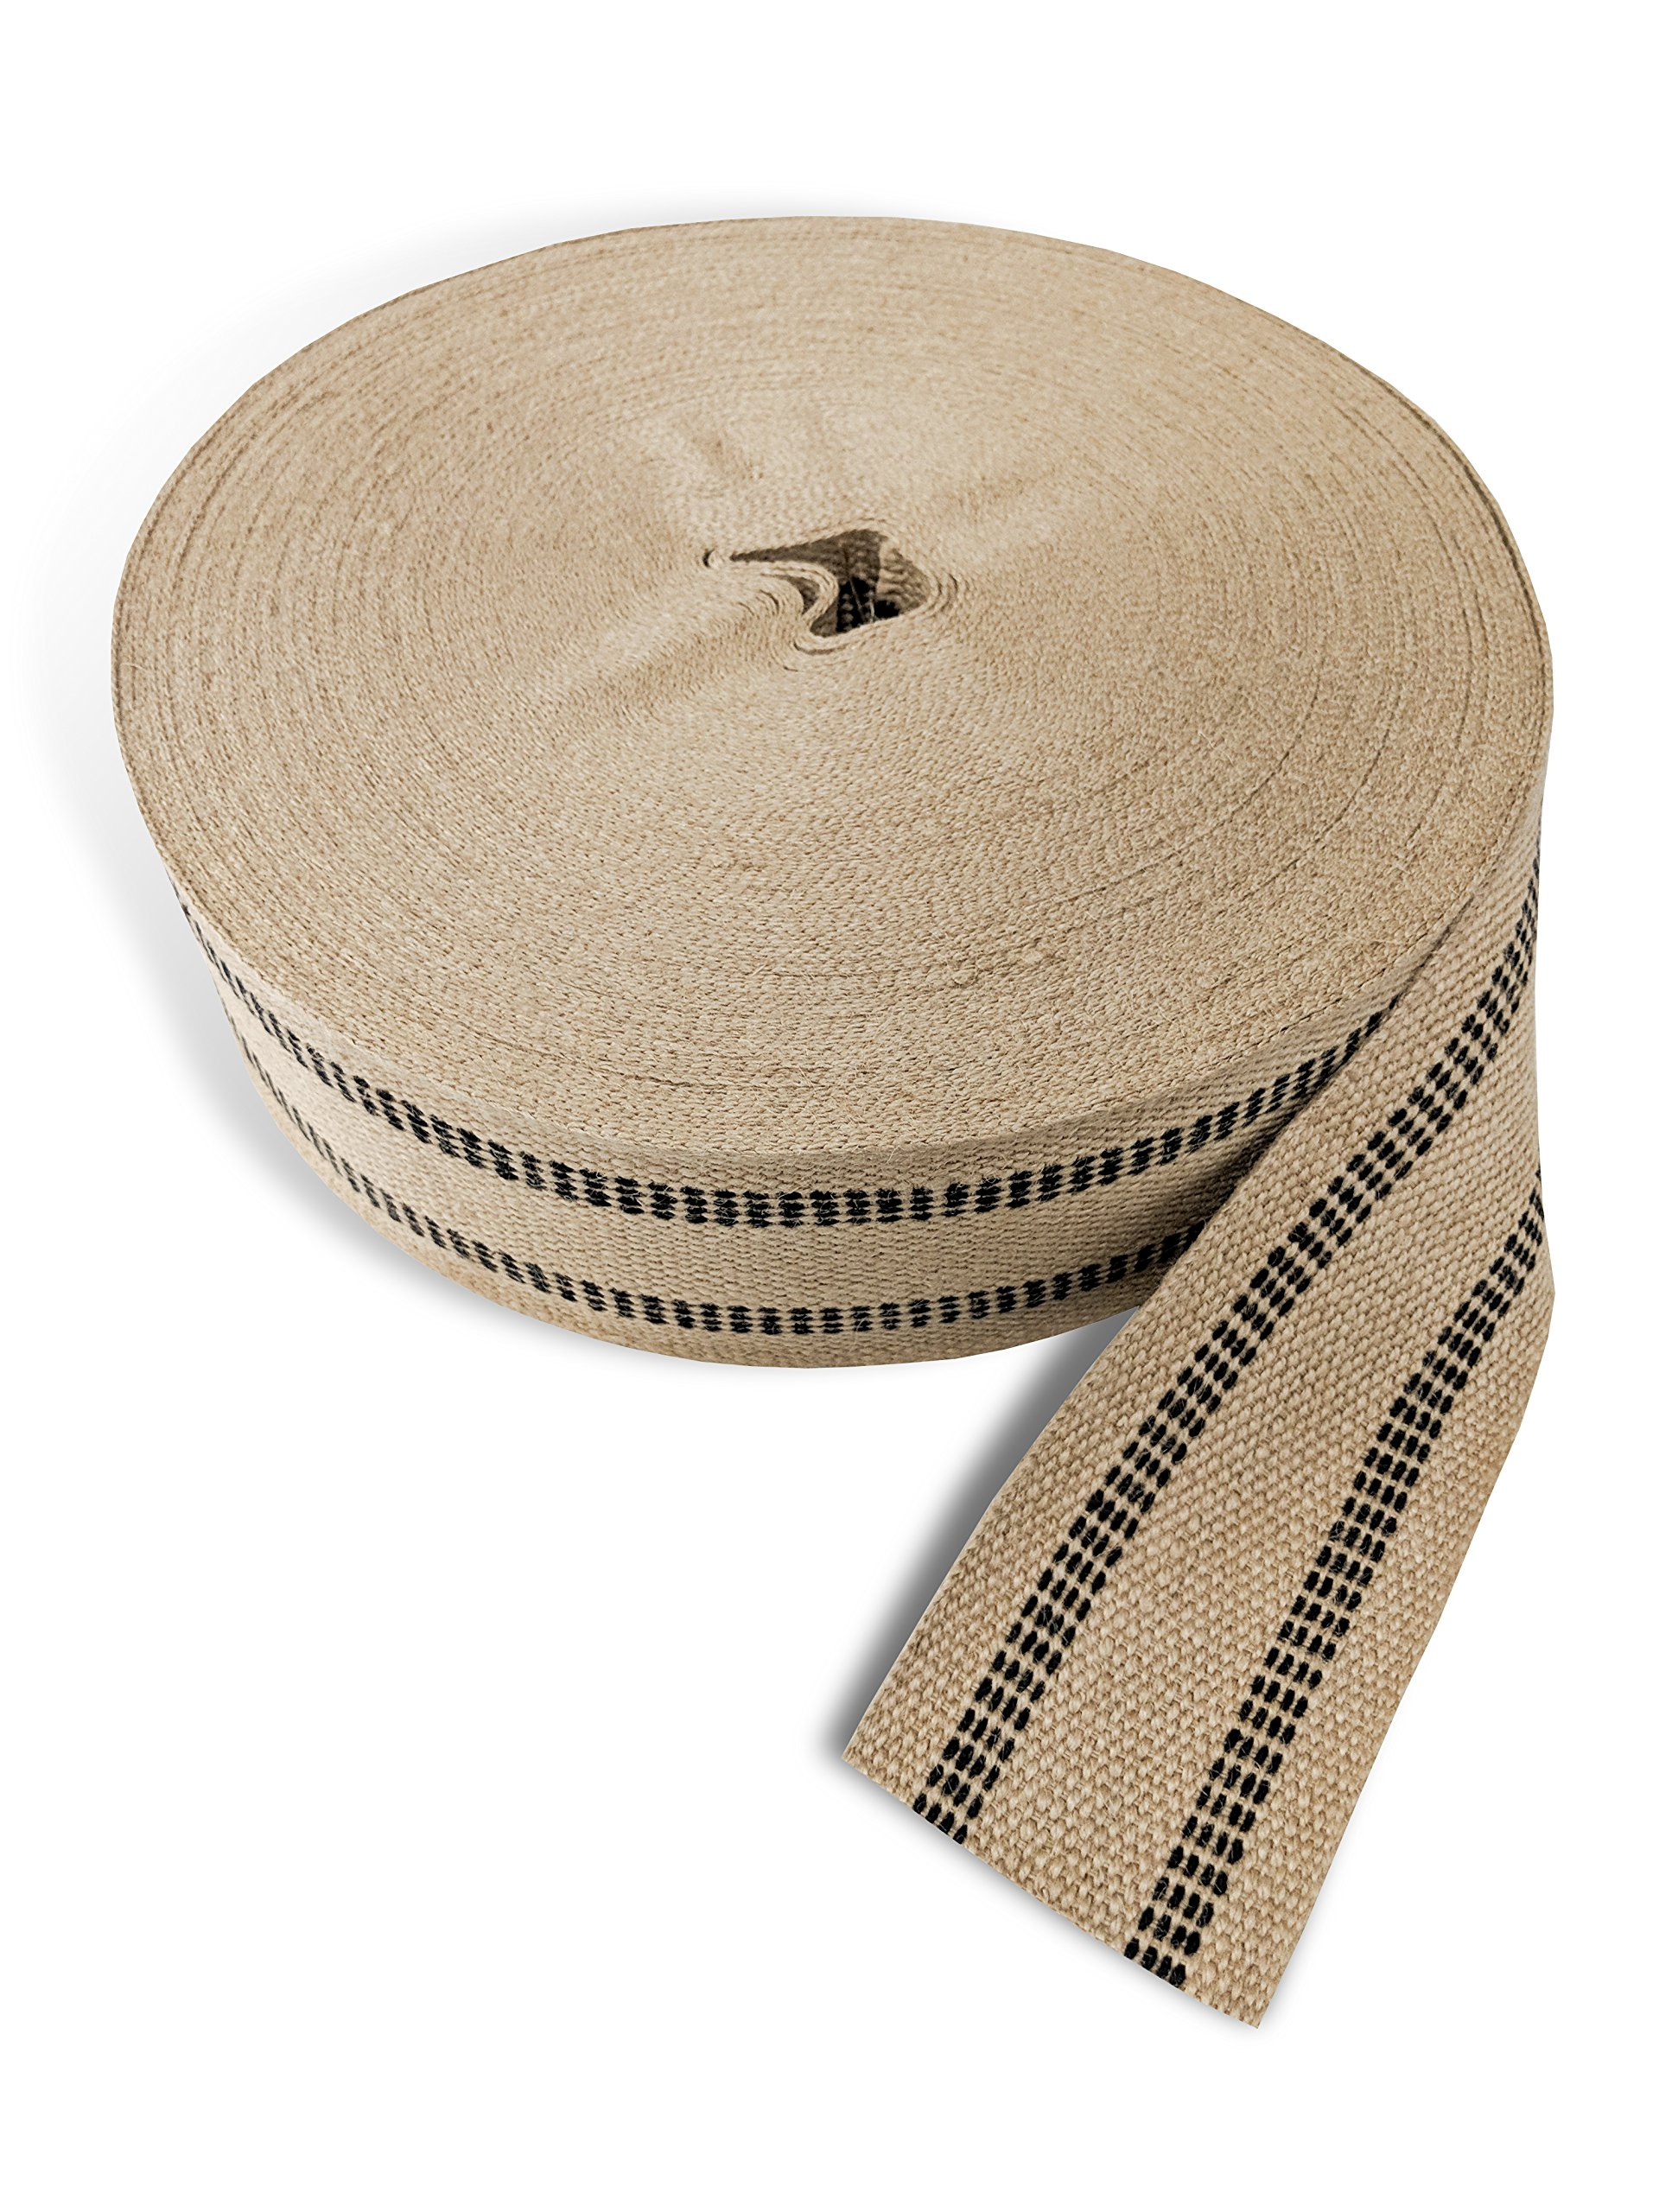 Wholesale Upholstery Supply 72 YDS Upholstery or Craft Jute Webbing, 3.5'' x 72 Yds - Natural with Black Stripes by Wholesale Upholstery Supply (Image #3)